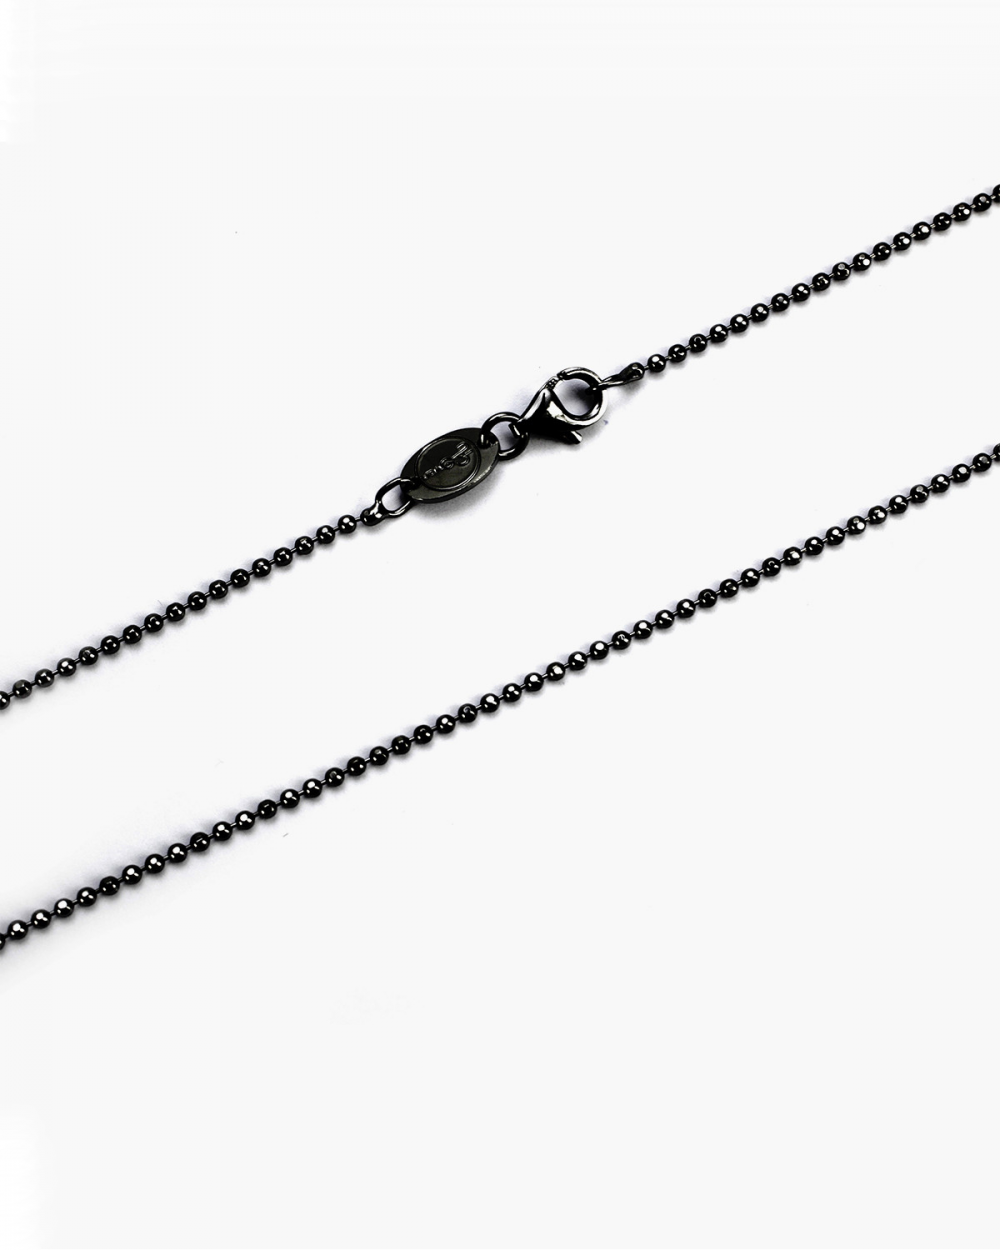 Necklaces DIAMOND AND RUTHENIUM BALL CHAIN NECKLACE 150 NOVE25